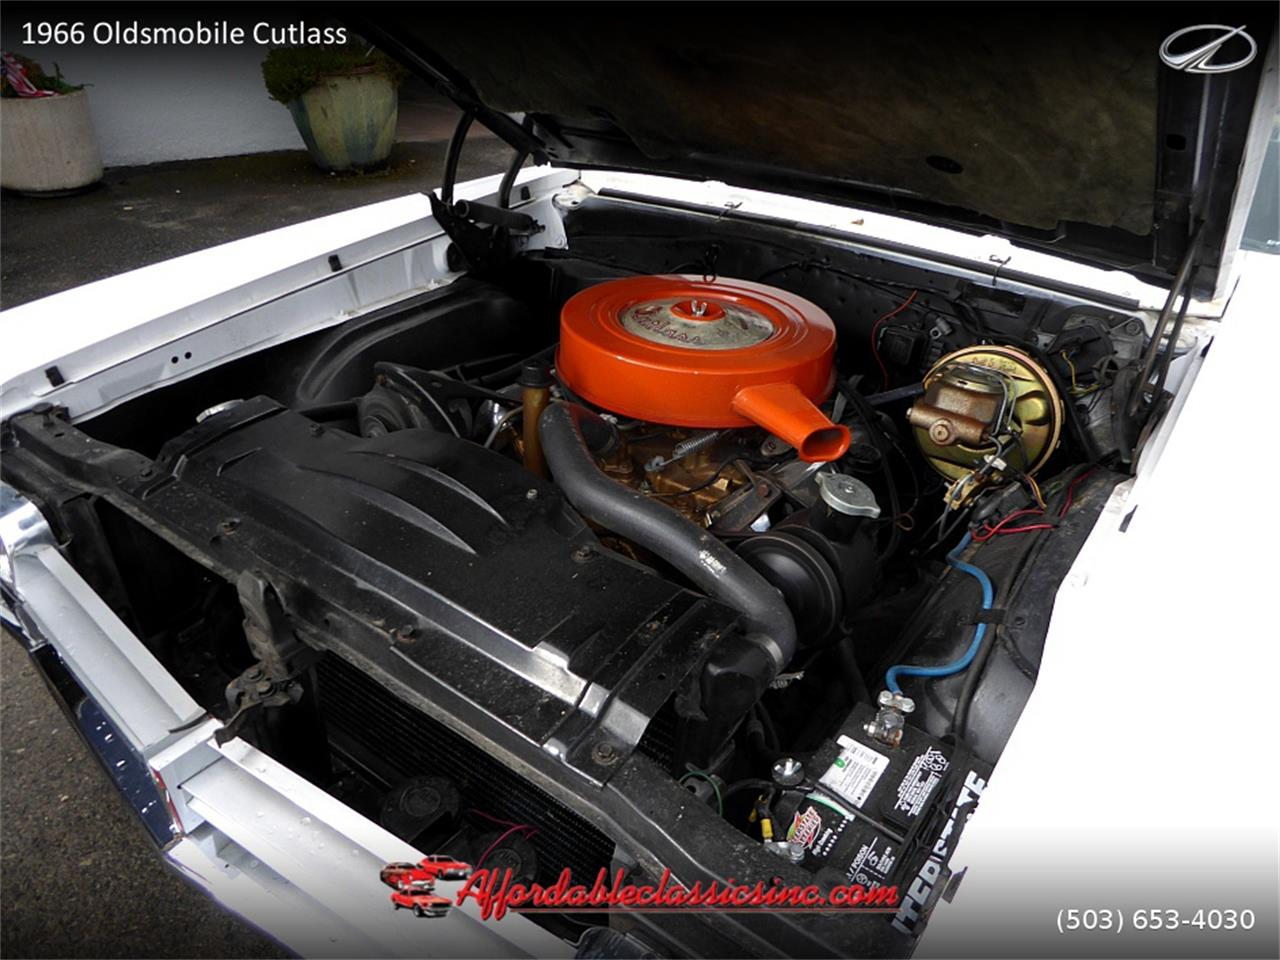 Large Picture of Classic '66 Oldsmobile Cutlass located in Gladstone Oregon - $25,500.00 - MN4C